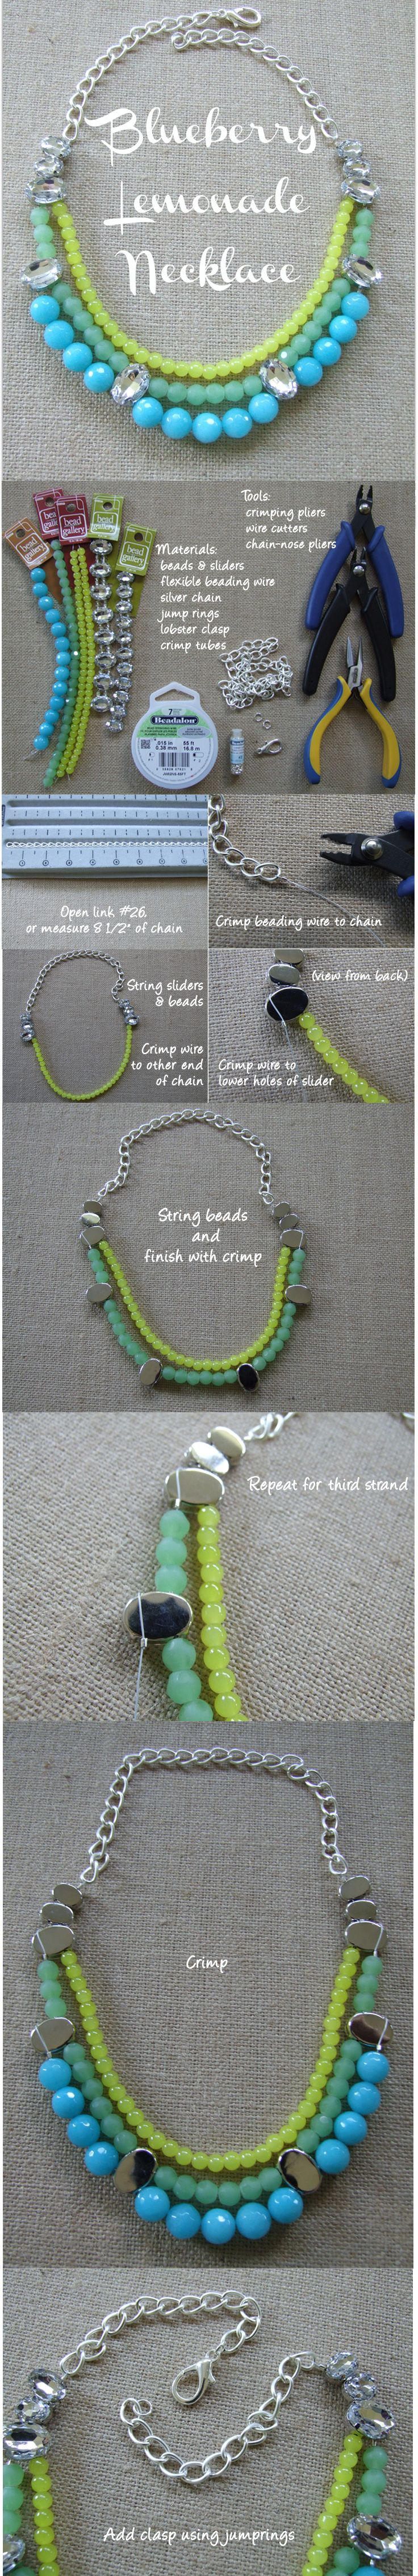 DIY Blueberry Lemonade Fashion Necklace (minus the bling)